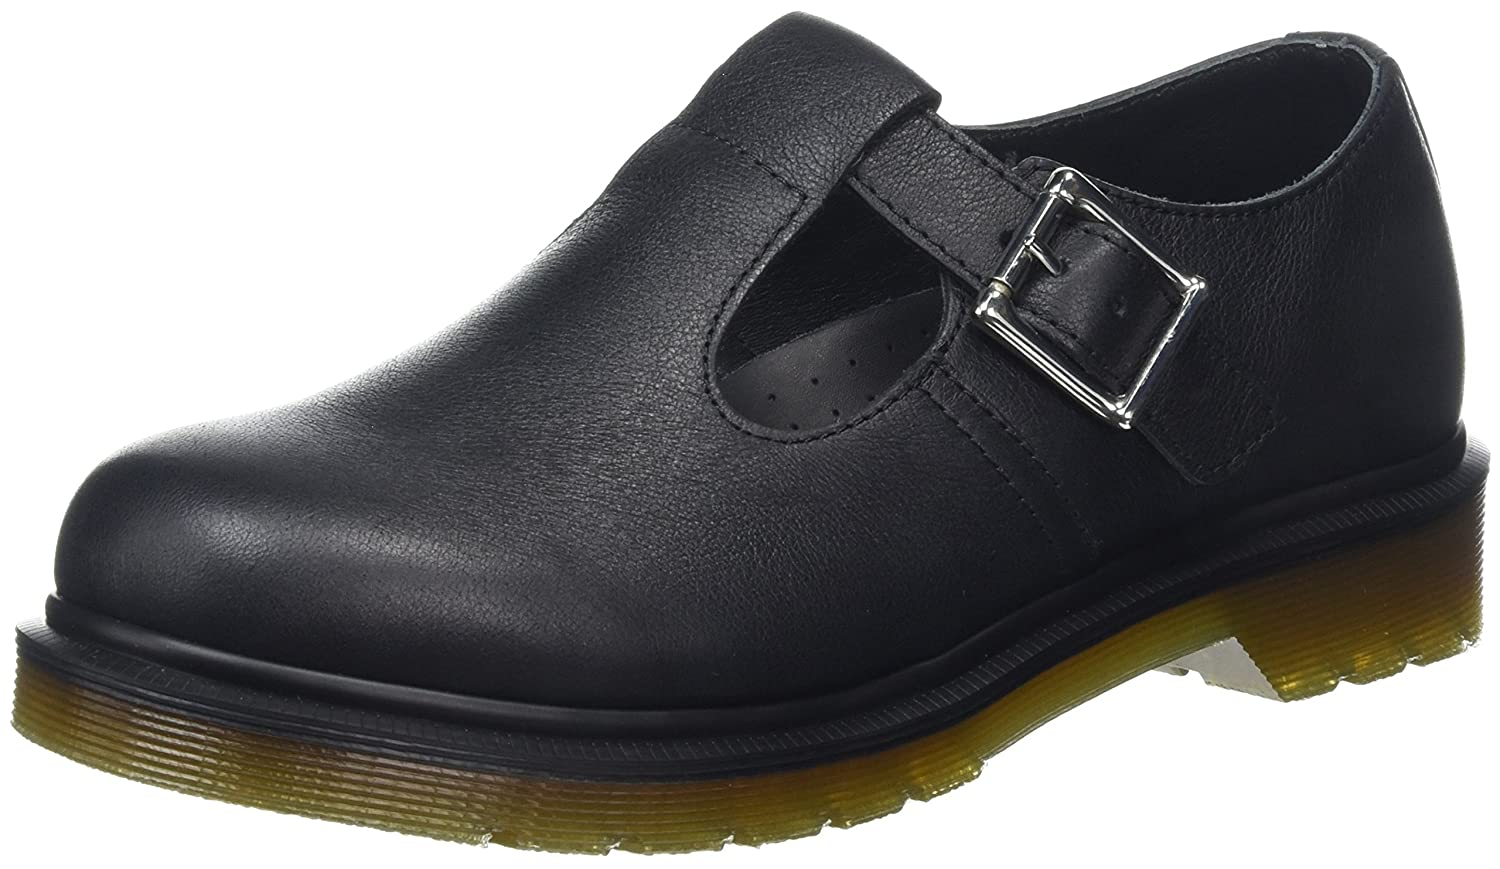 Dr. Martens Women's Polley Plain Welt T-Bar Leather Mary Janes B01MY3DB2J 6 M UK / 8 B(M) US|Black